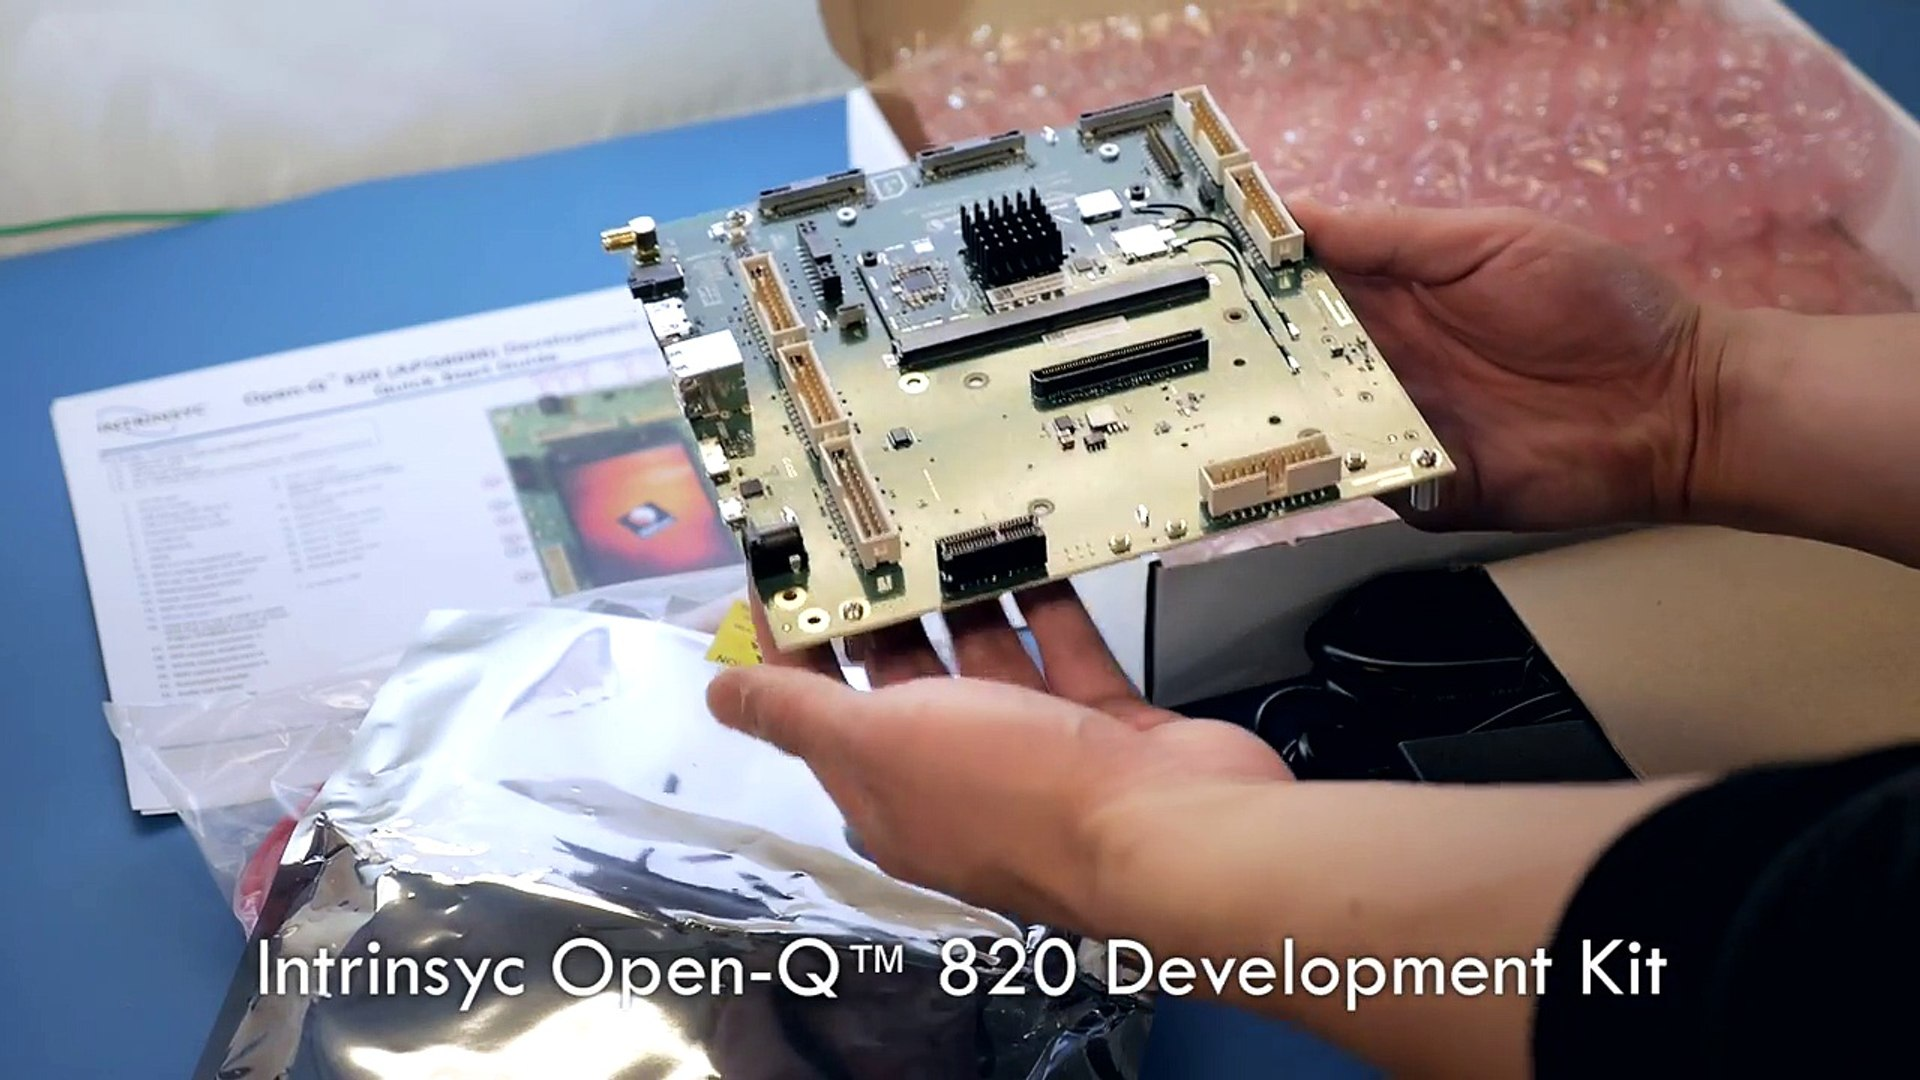 Intrinsyc Open-Q™  820 Development Kit Unboxing Video